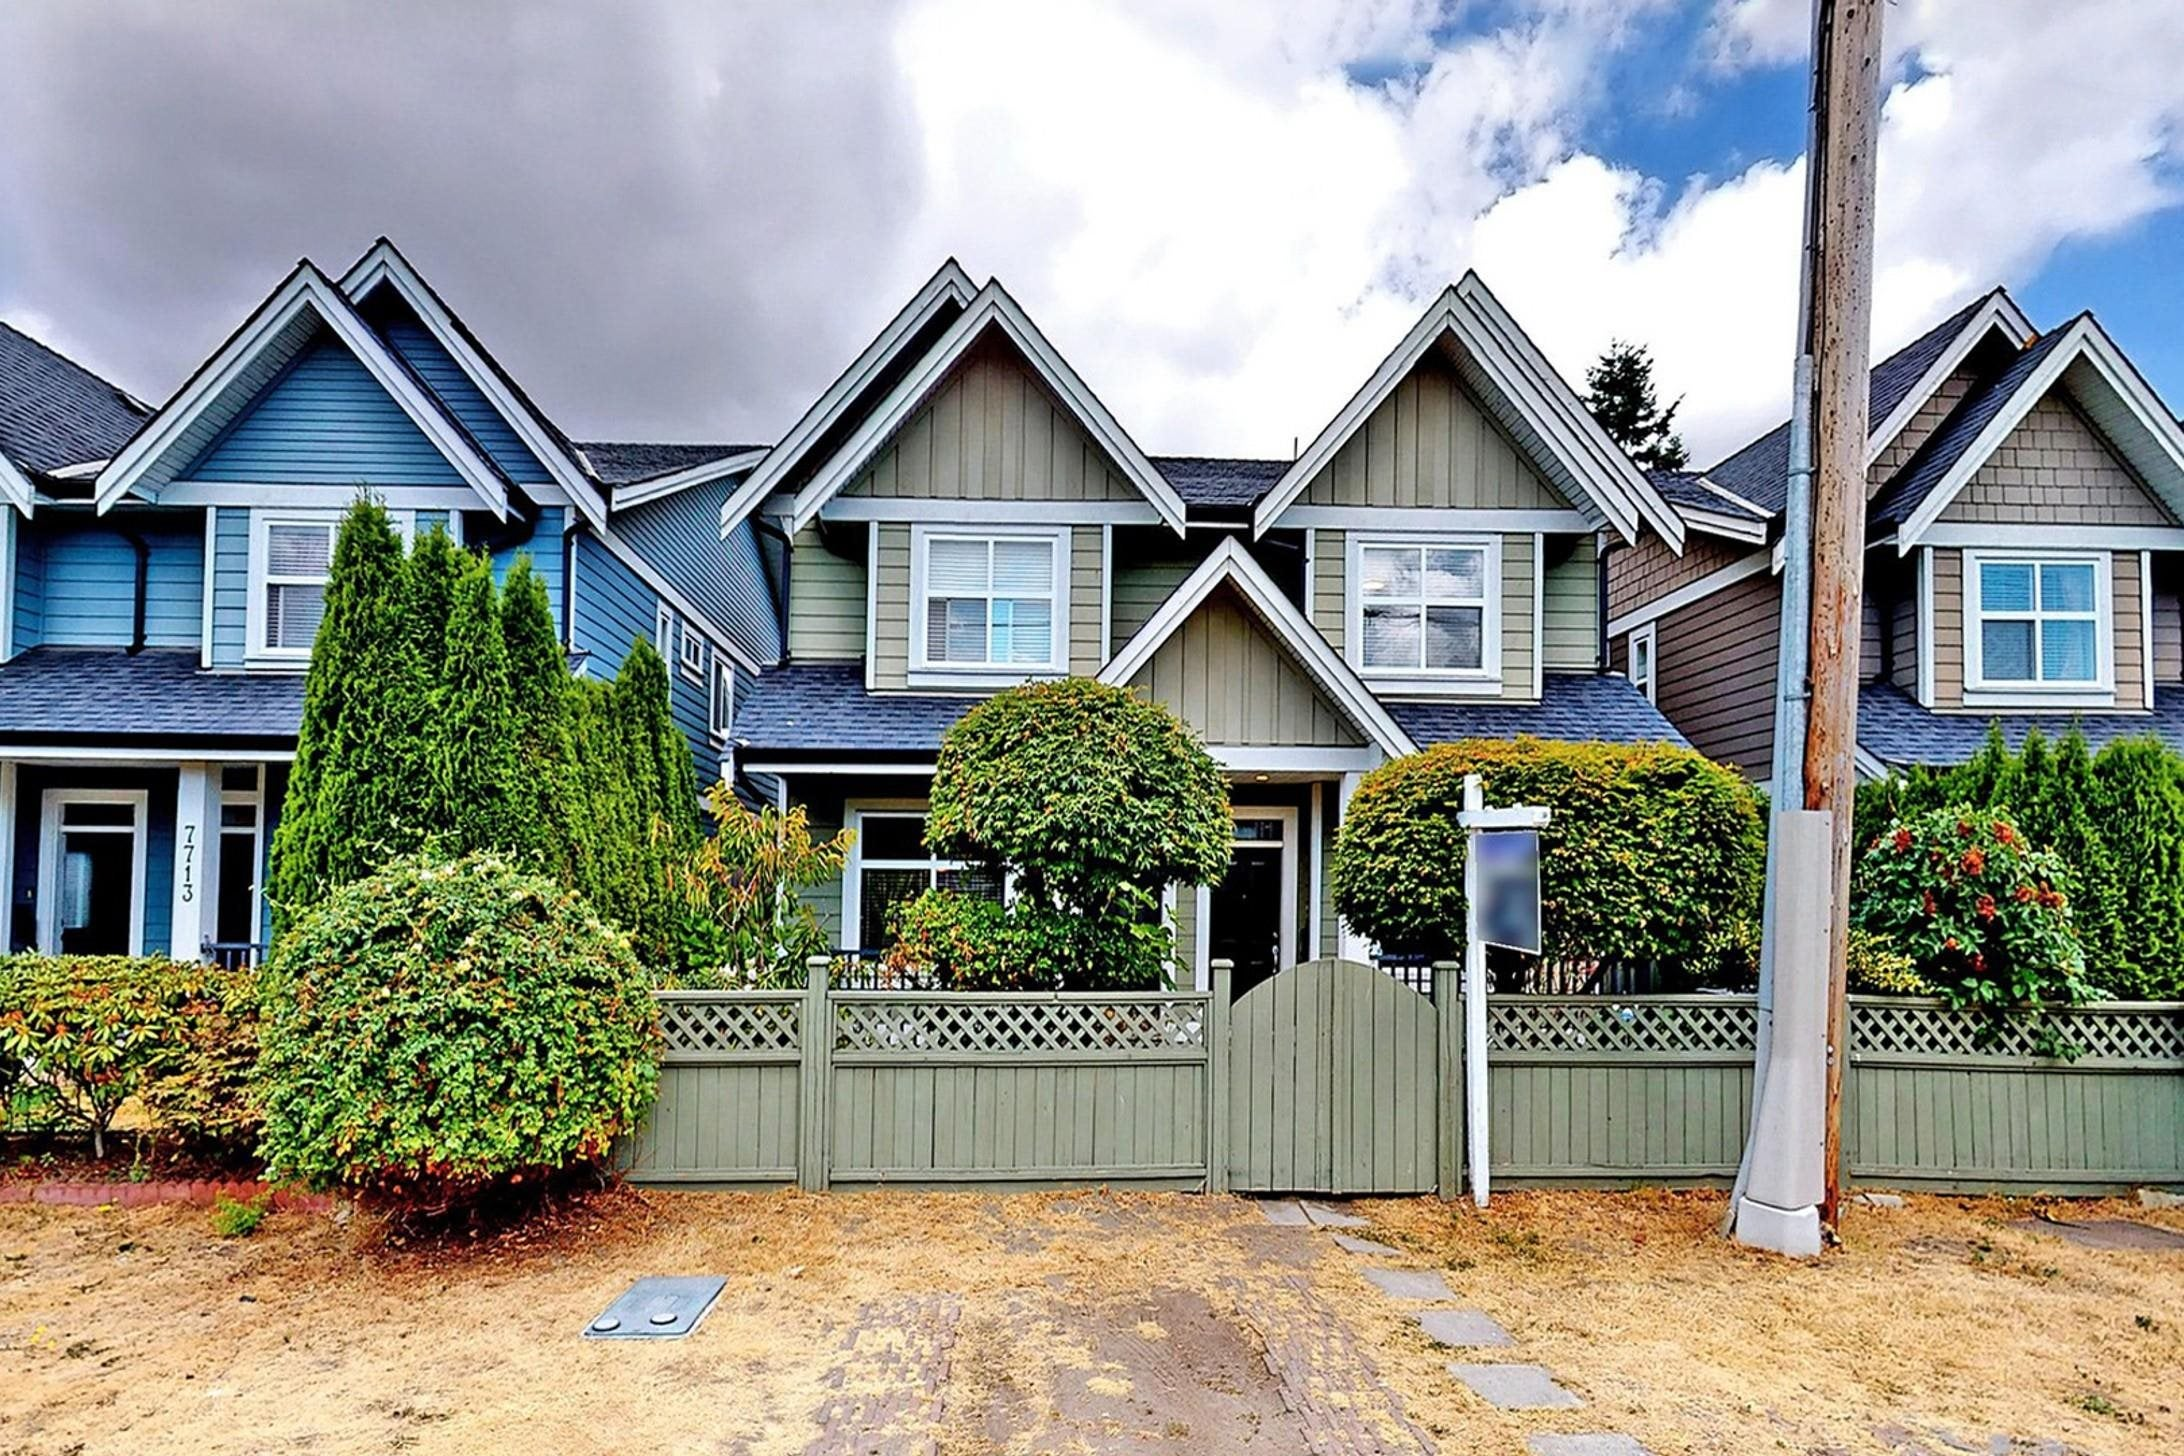 7719 ACHESON ROAD - Brighouse South 1/2 Duplex for sale, 4 Bedrooms (R2625943)